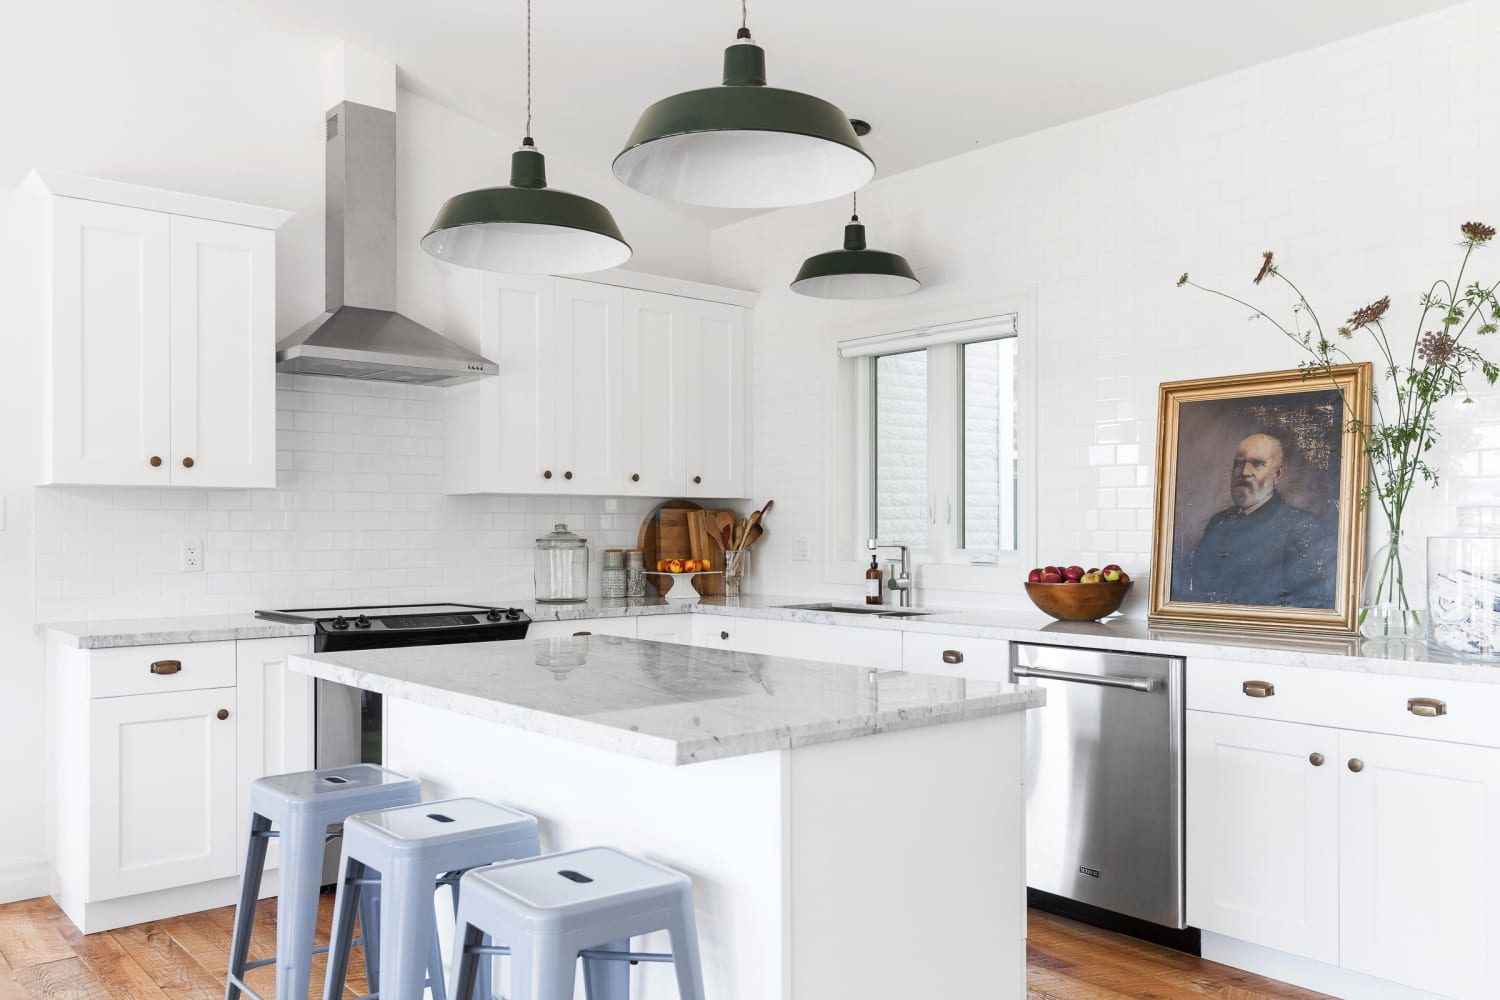 3 Ways to Tackle Your Greasy Kitchen Problem